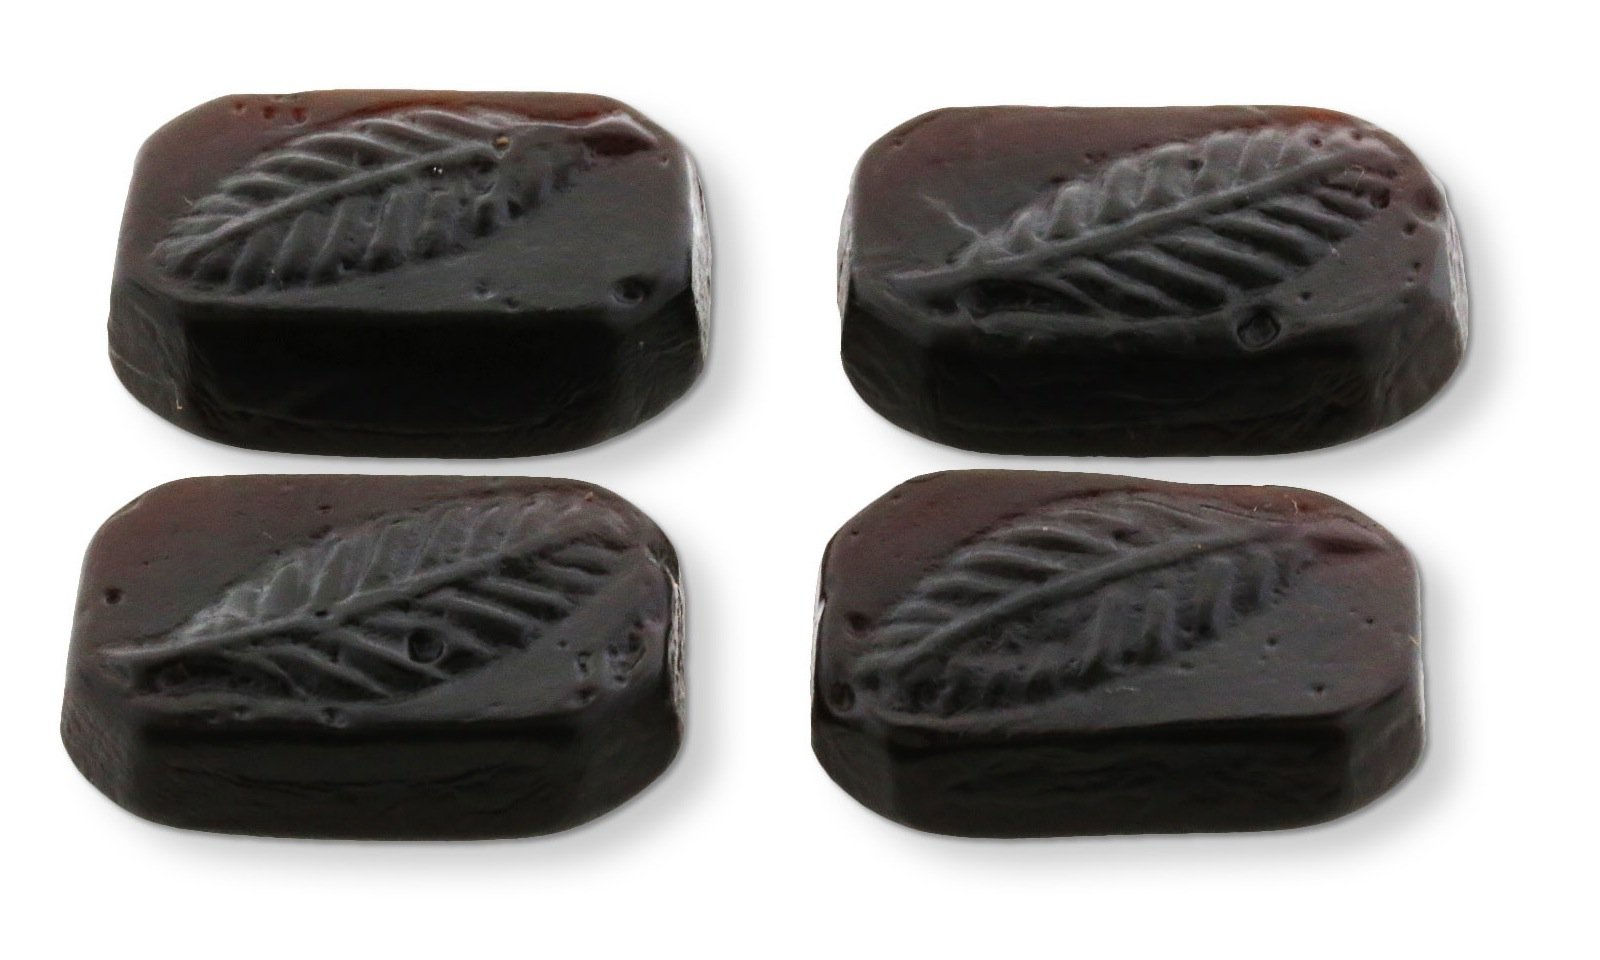 Gustaf, Touch Of Italy Licorice Hard Black licorice with a Hint Of Bay Leaf (2.200 Lbs)